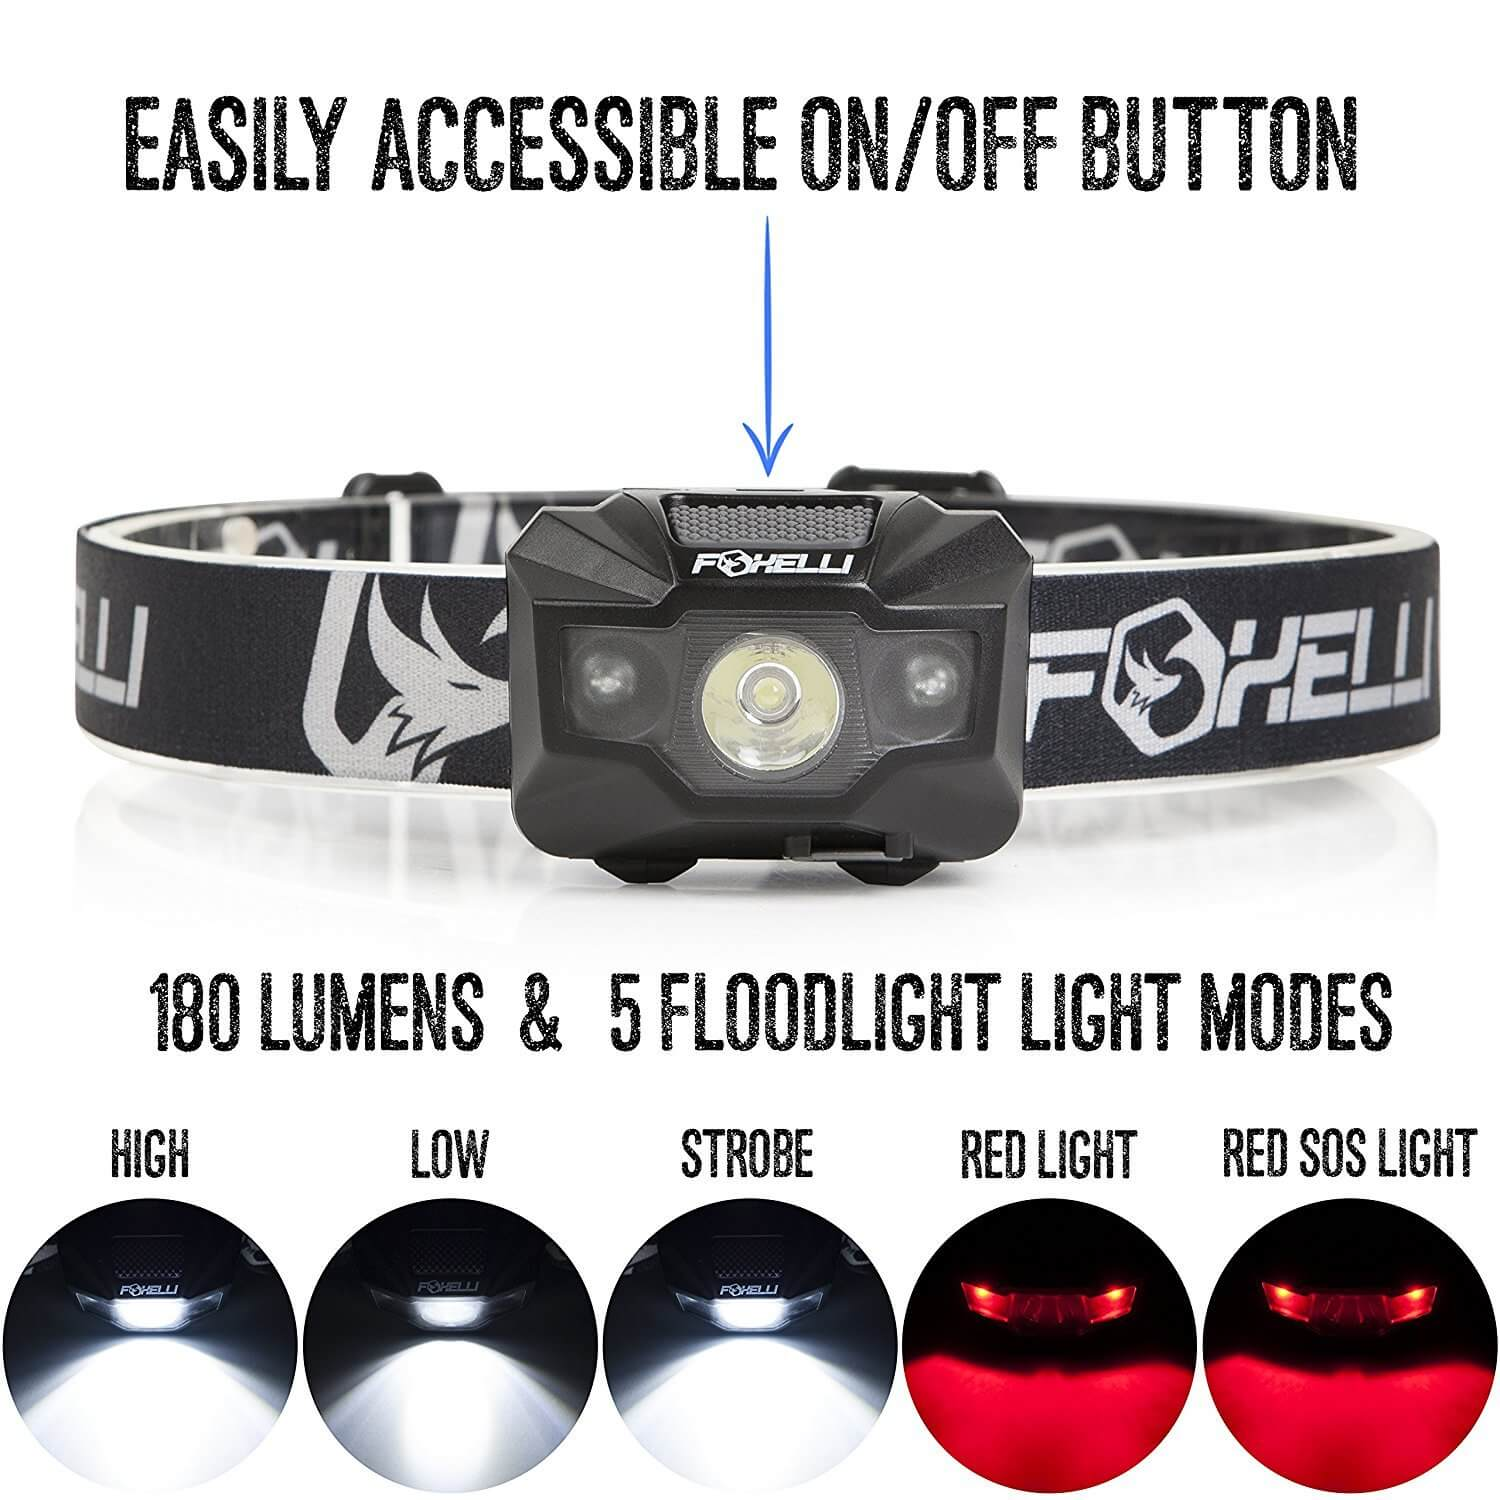 Foxelli Headlamp Light